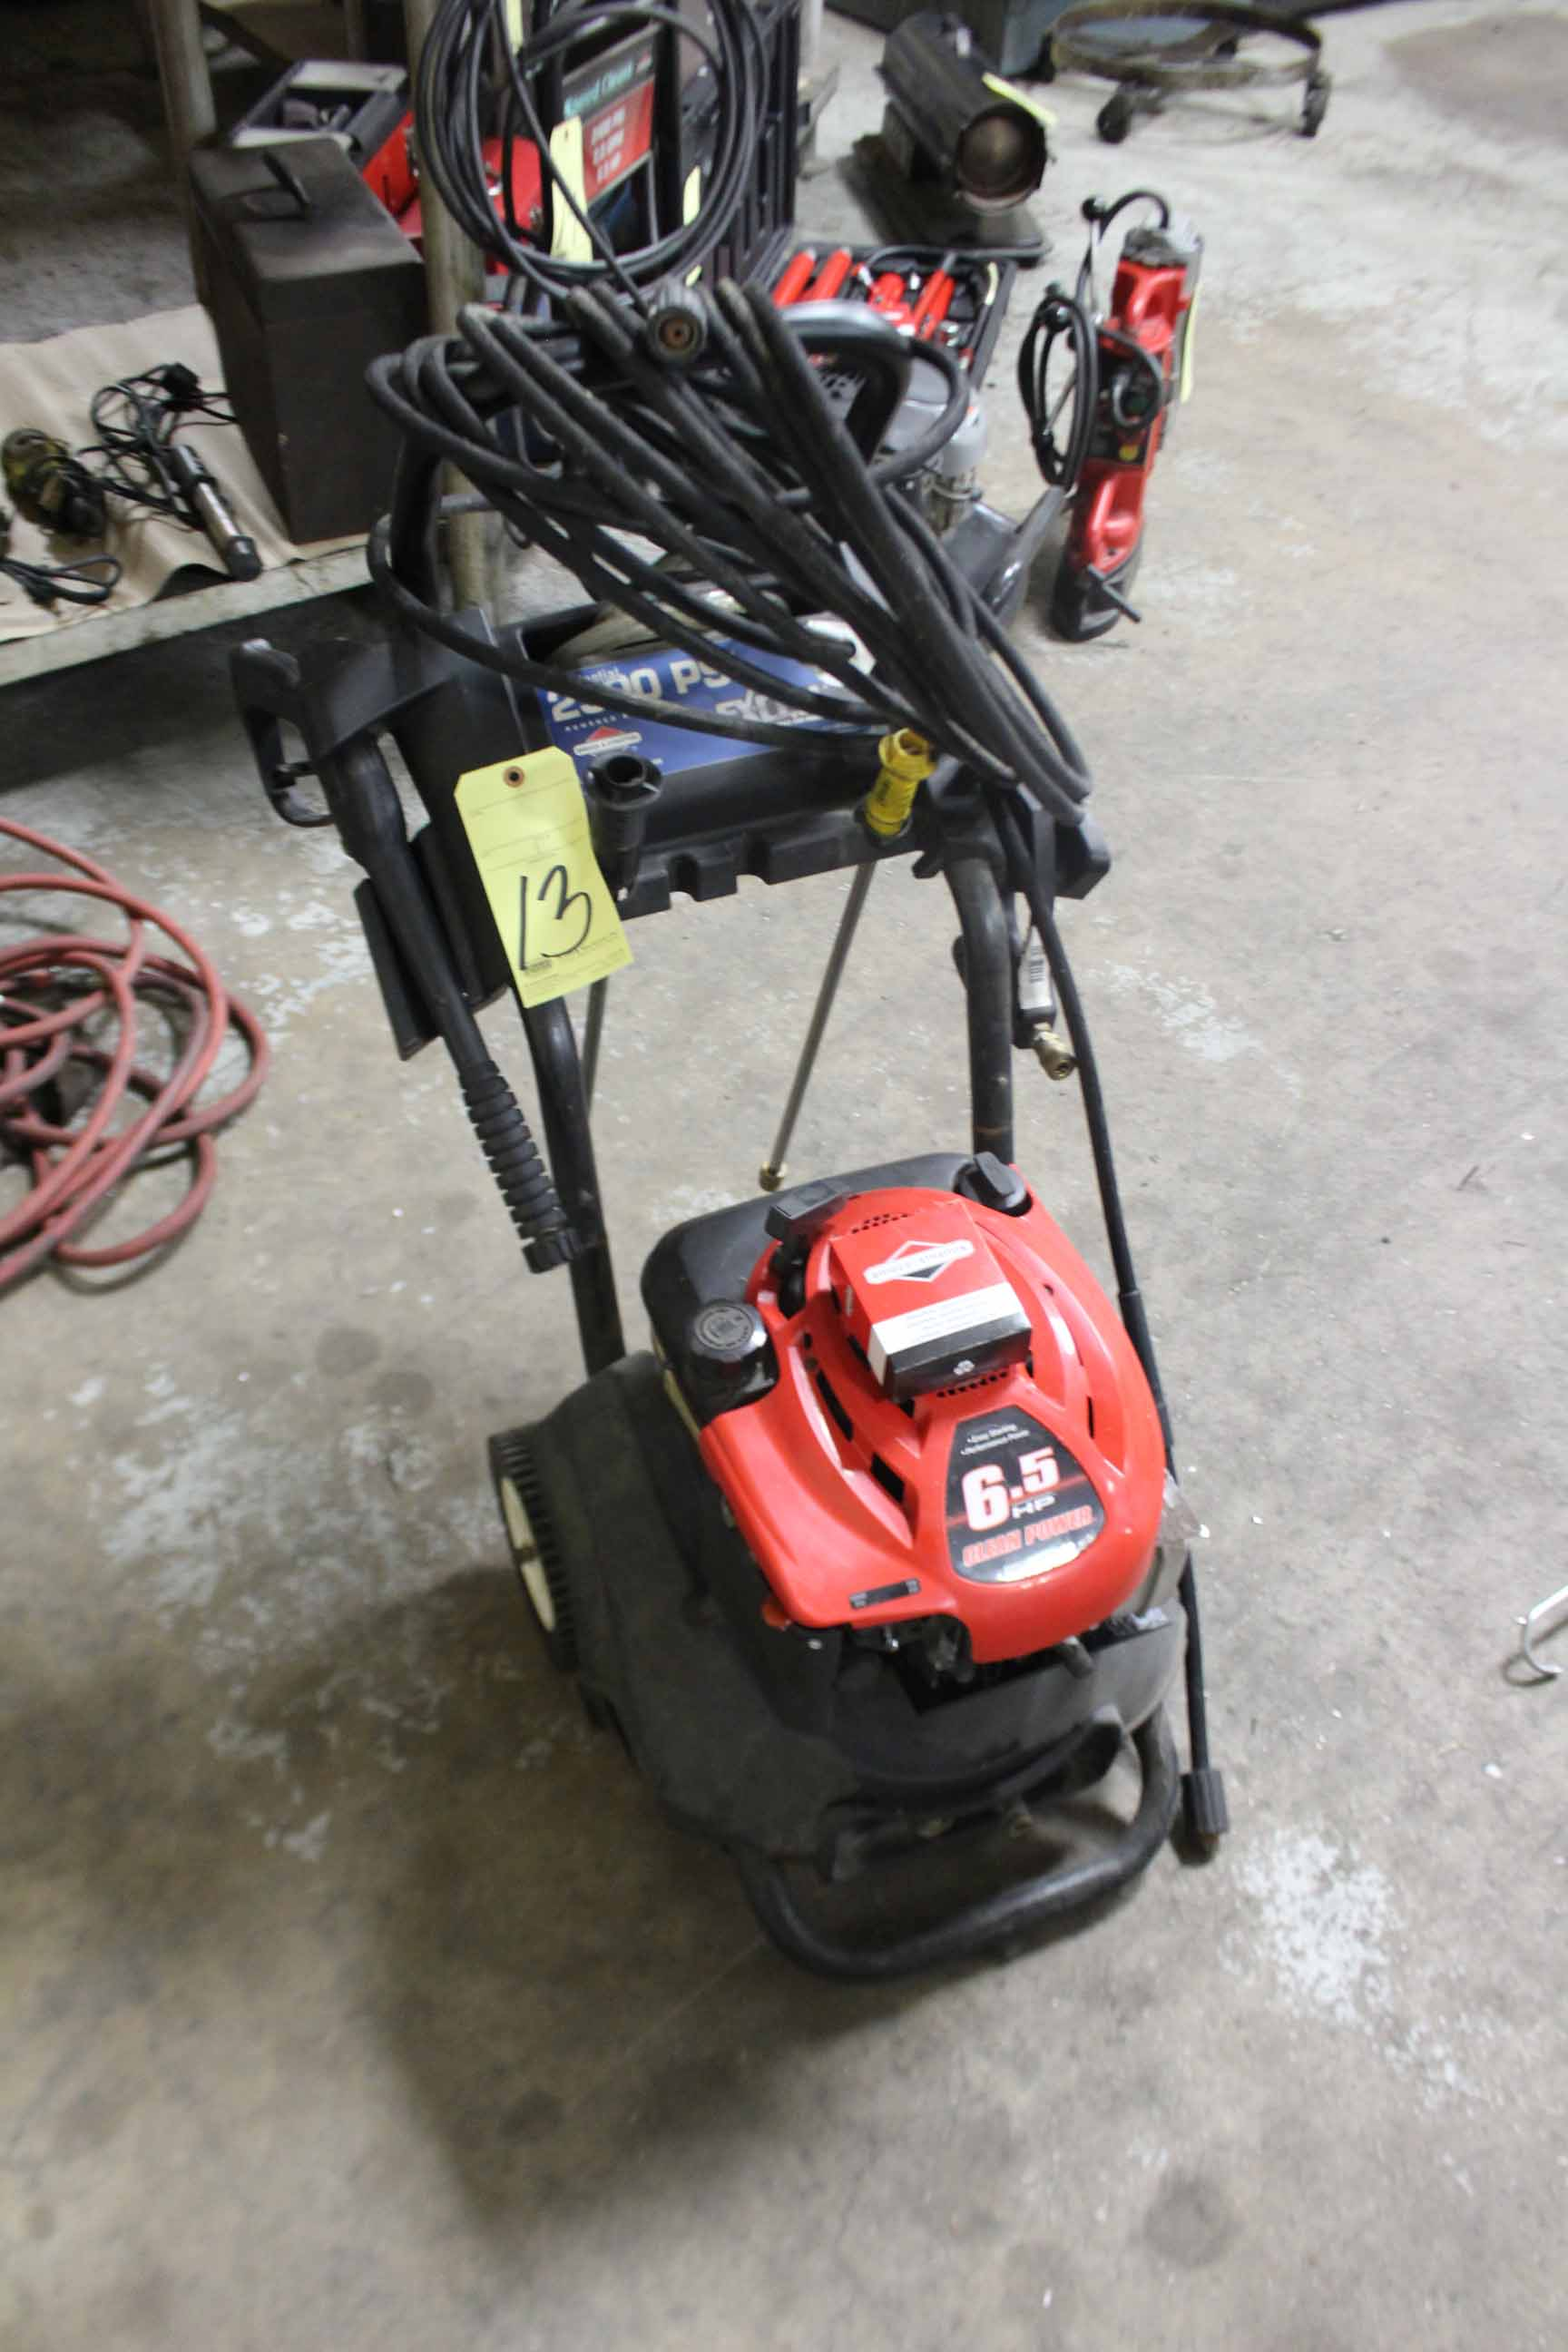 Lot 13 - POWER WASHER, EXCELL, BRIGGS & STRATTON ENGINE, 65 HP motor, 2,500 PSI